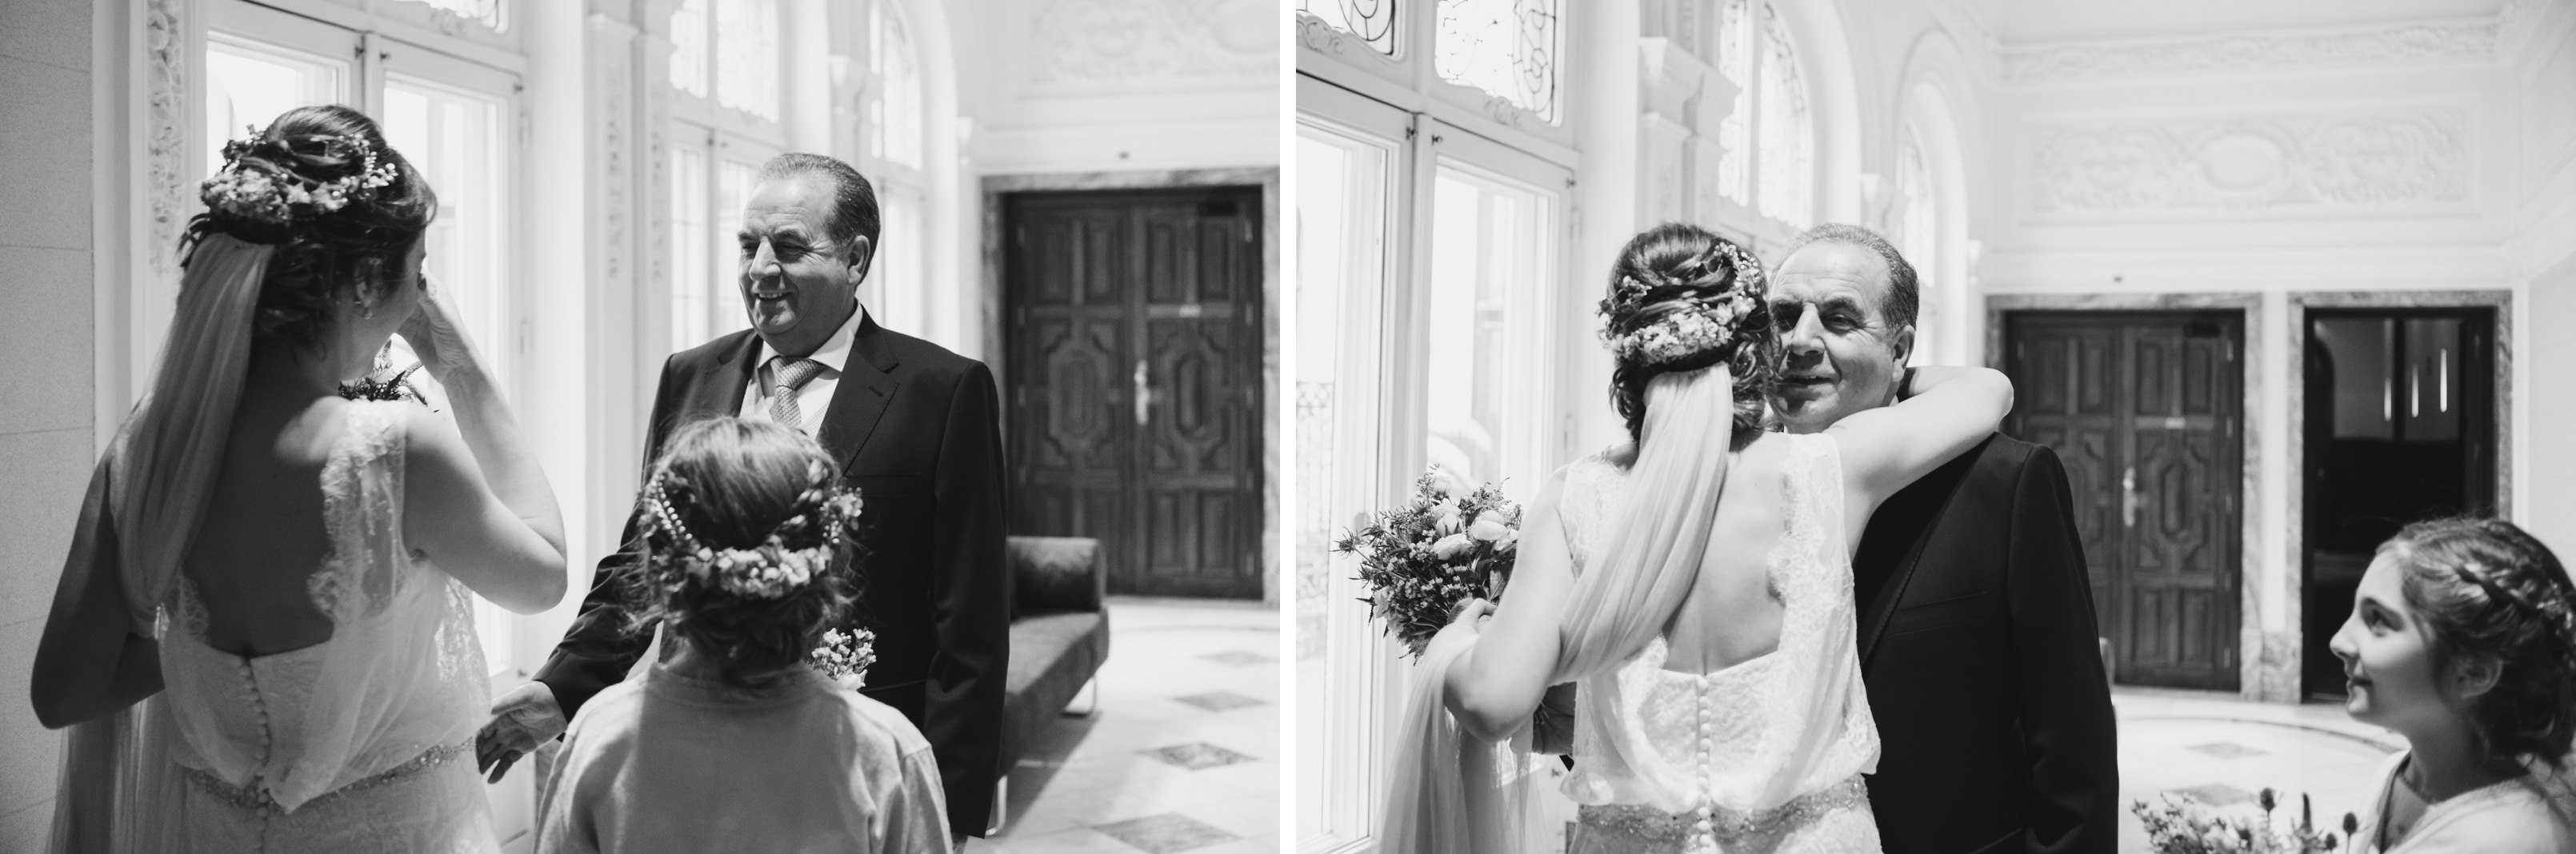 BODA EN MADRID ROSA PINEDA PHOTOGRAPHY-257-horz